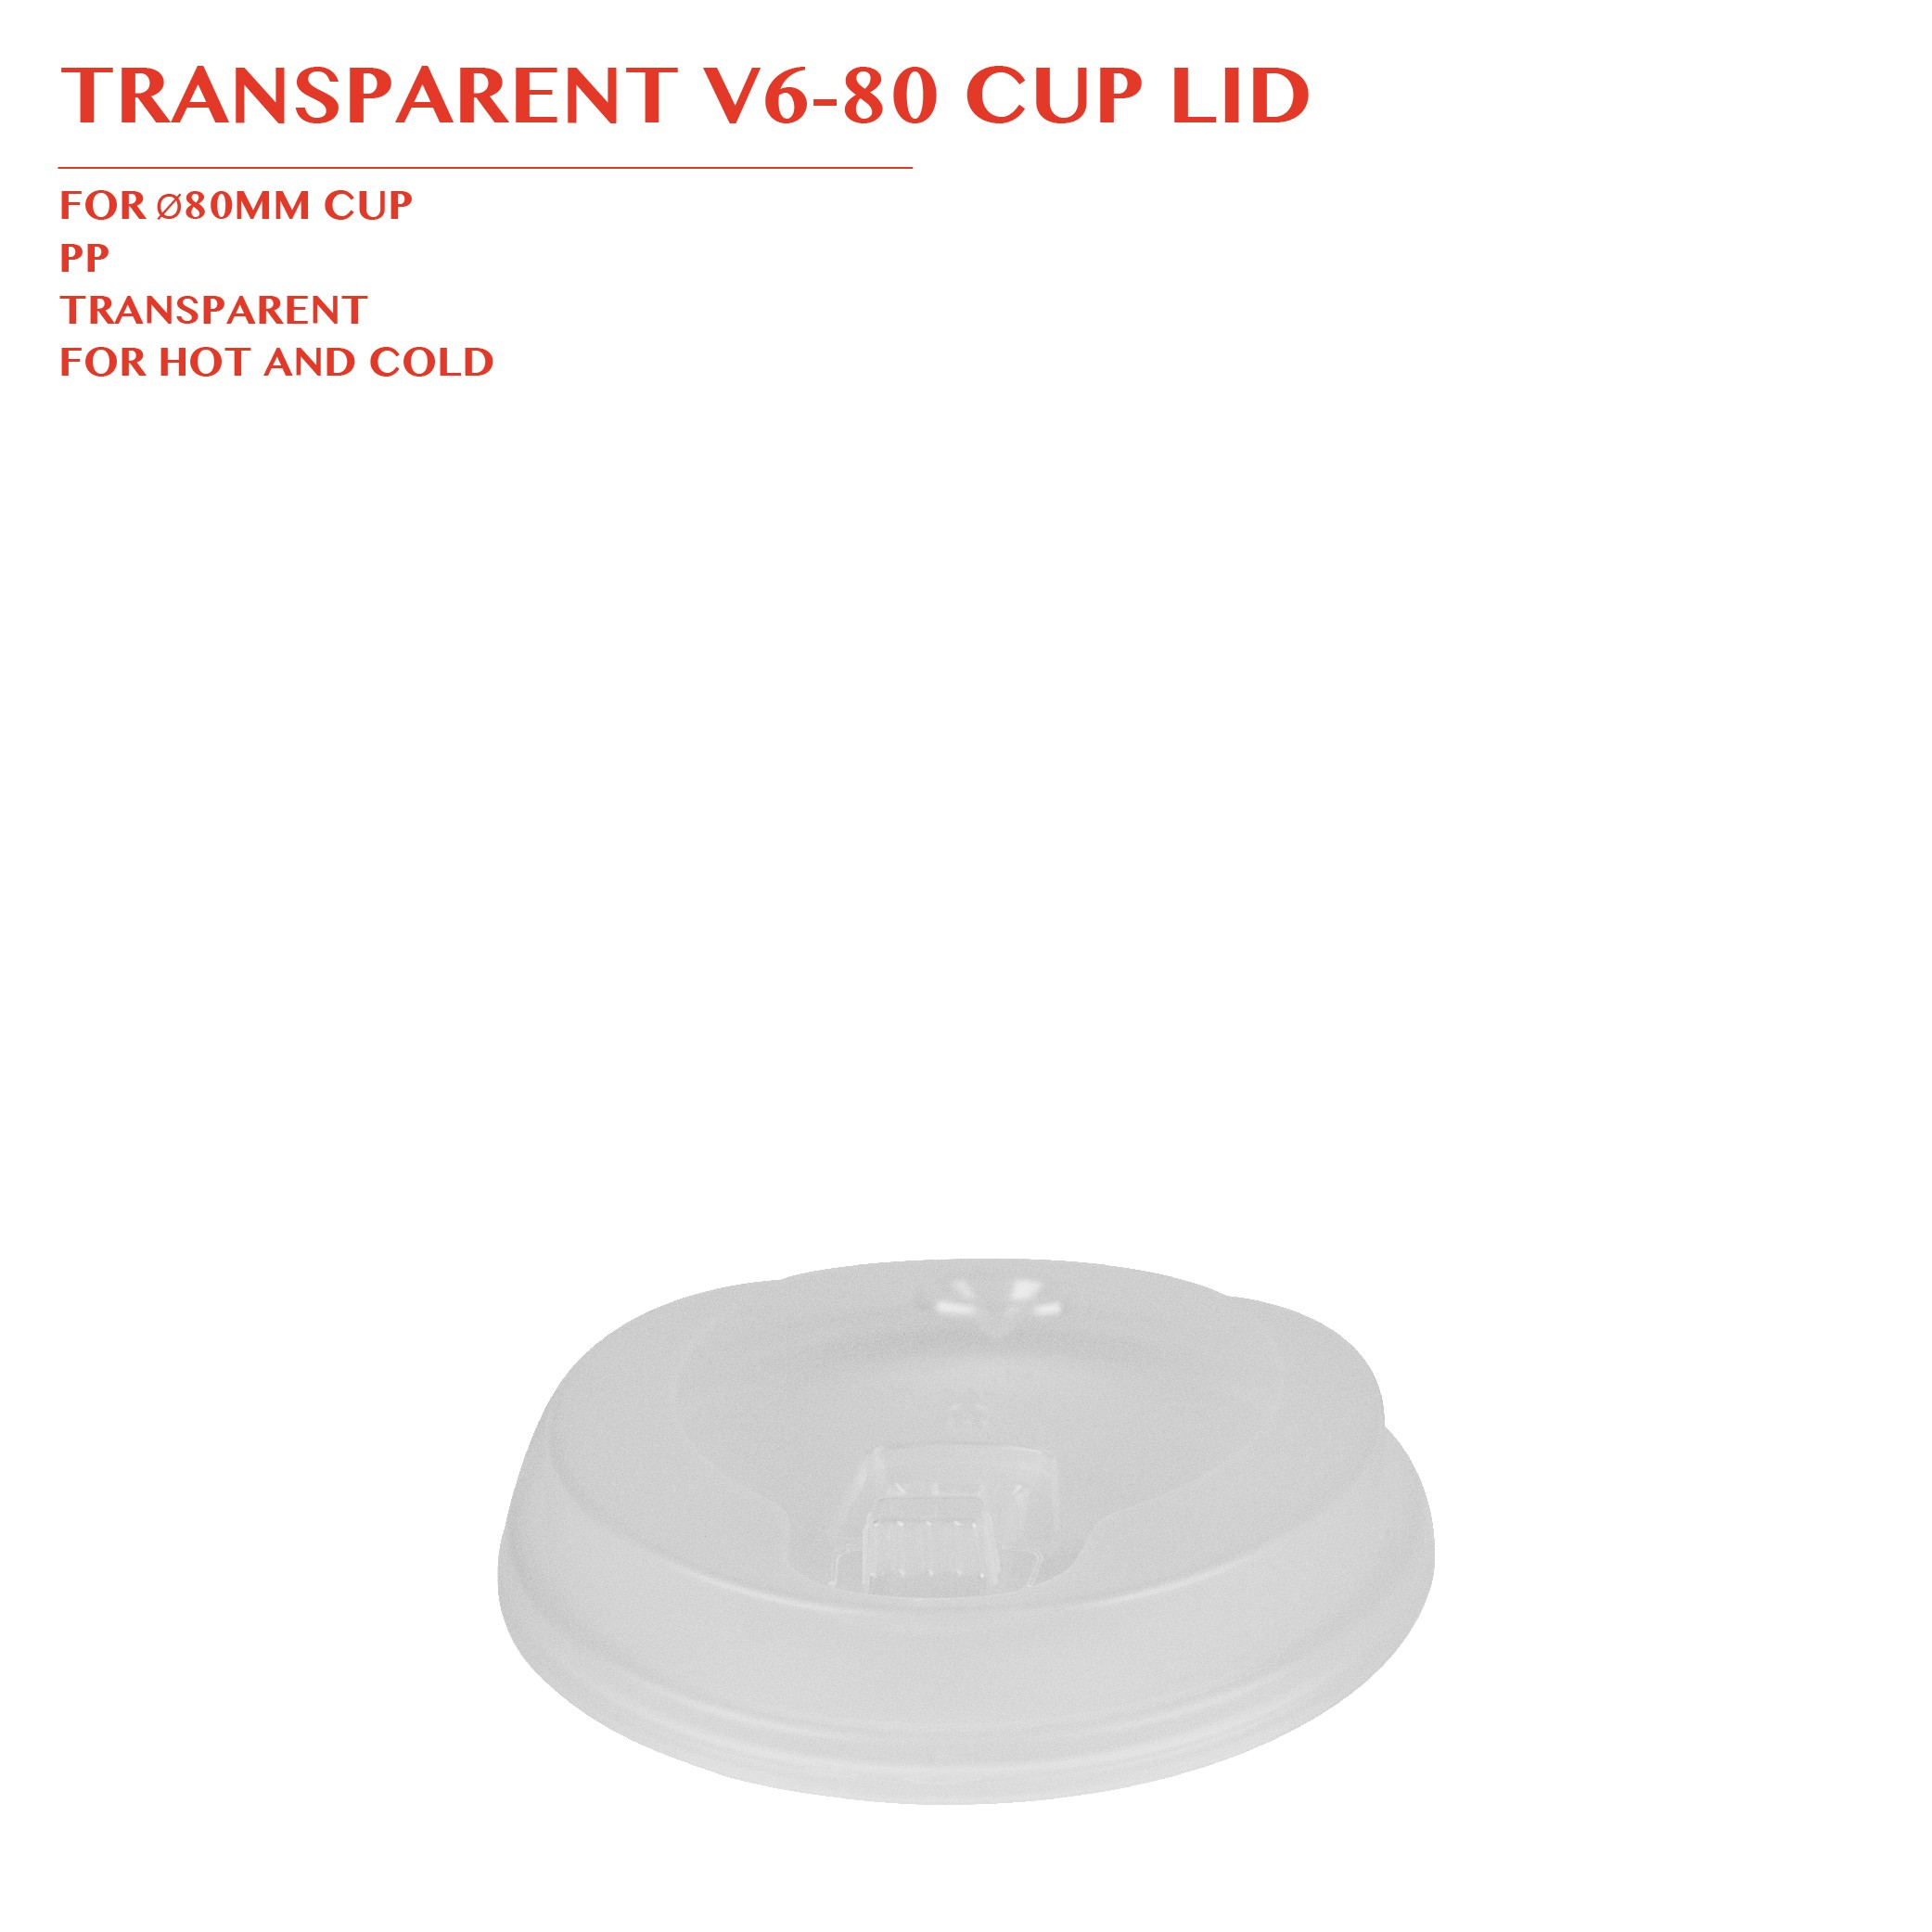 WHITE V6-80 CUP LID Ø80MM 1000PCS/CTN